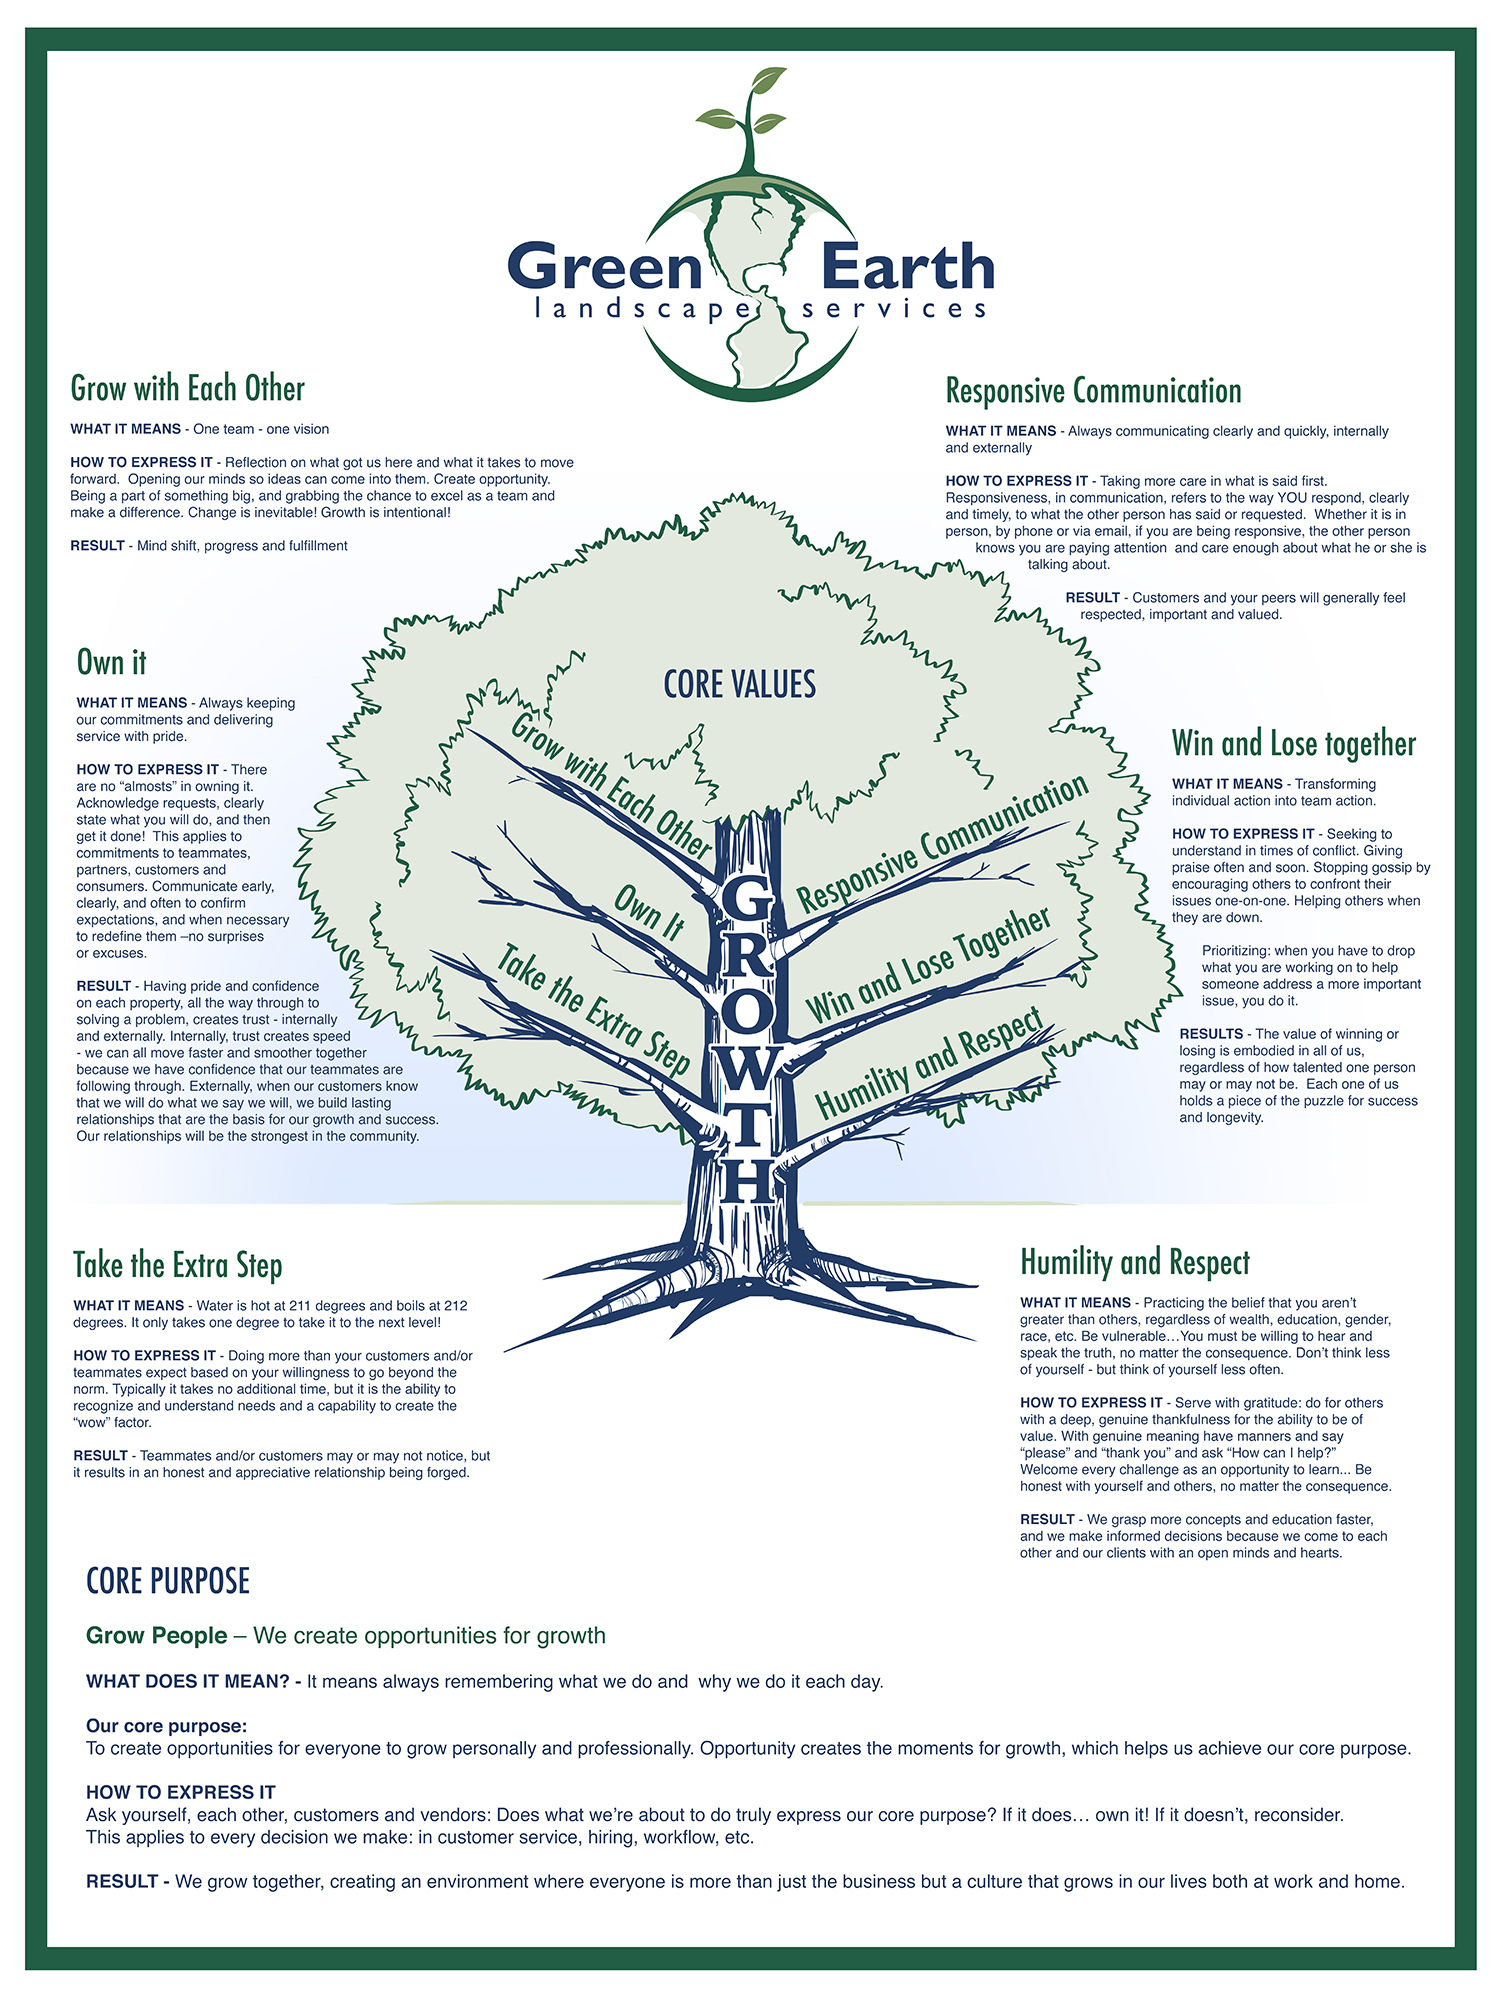 Graphic: Green Earth Landscape Services